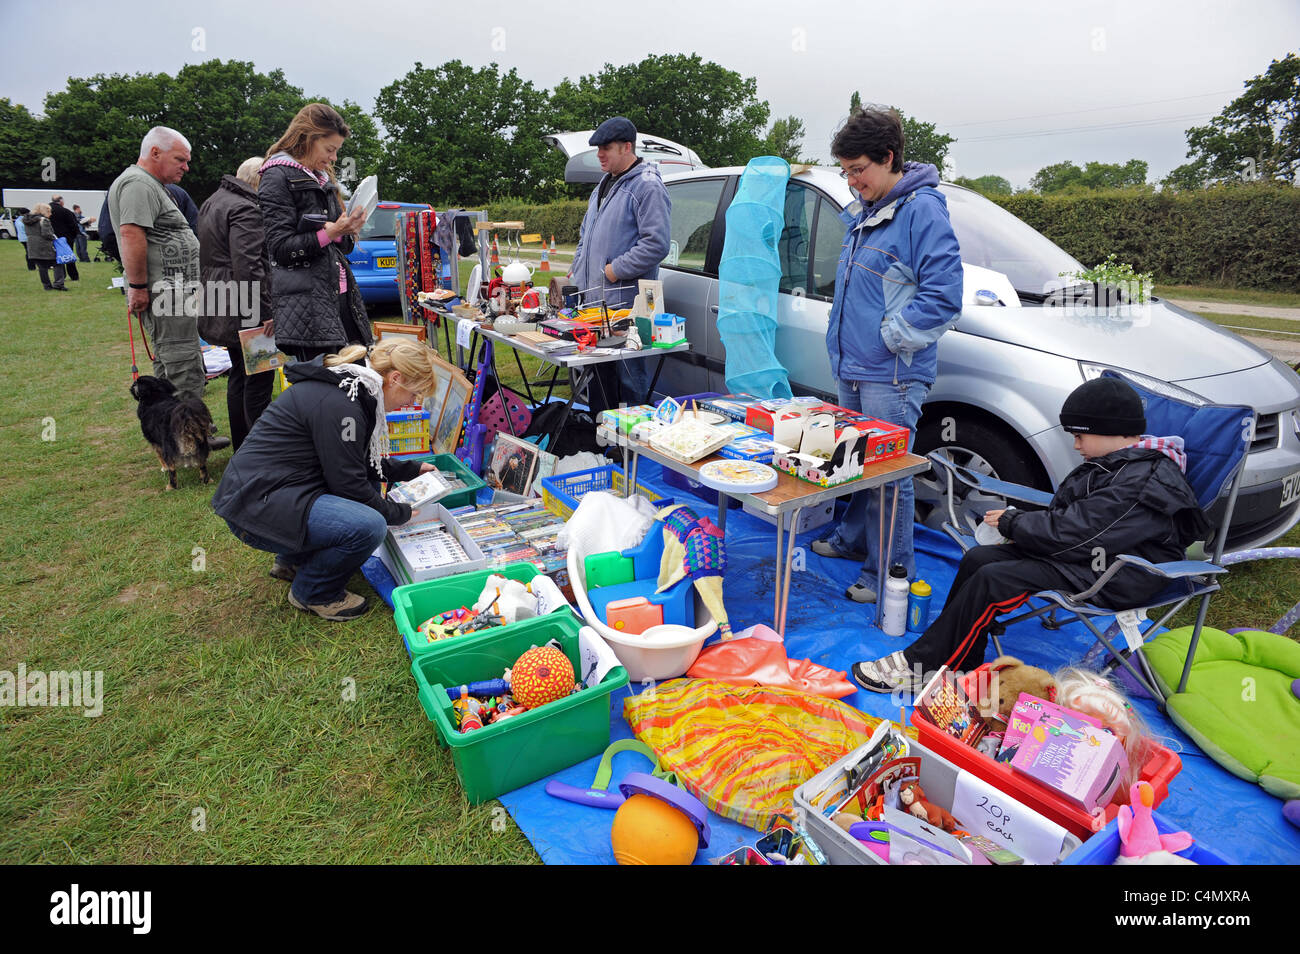 People looking for bargains at a car boot sale at Golden Cross in East Sussex - Stock Image